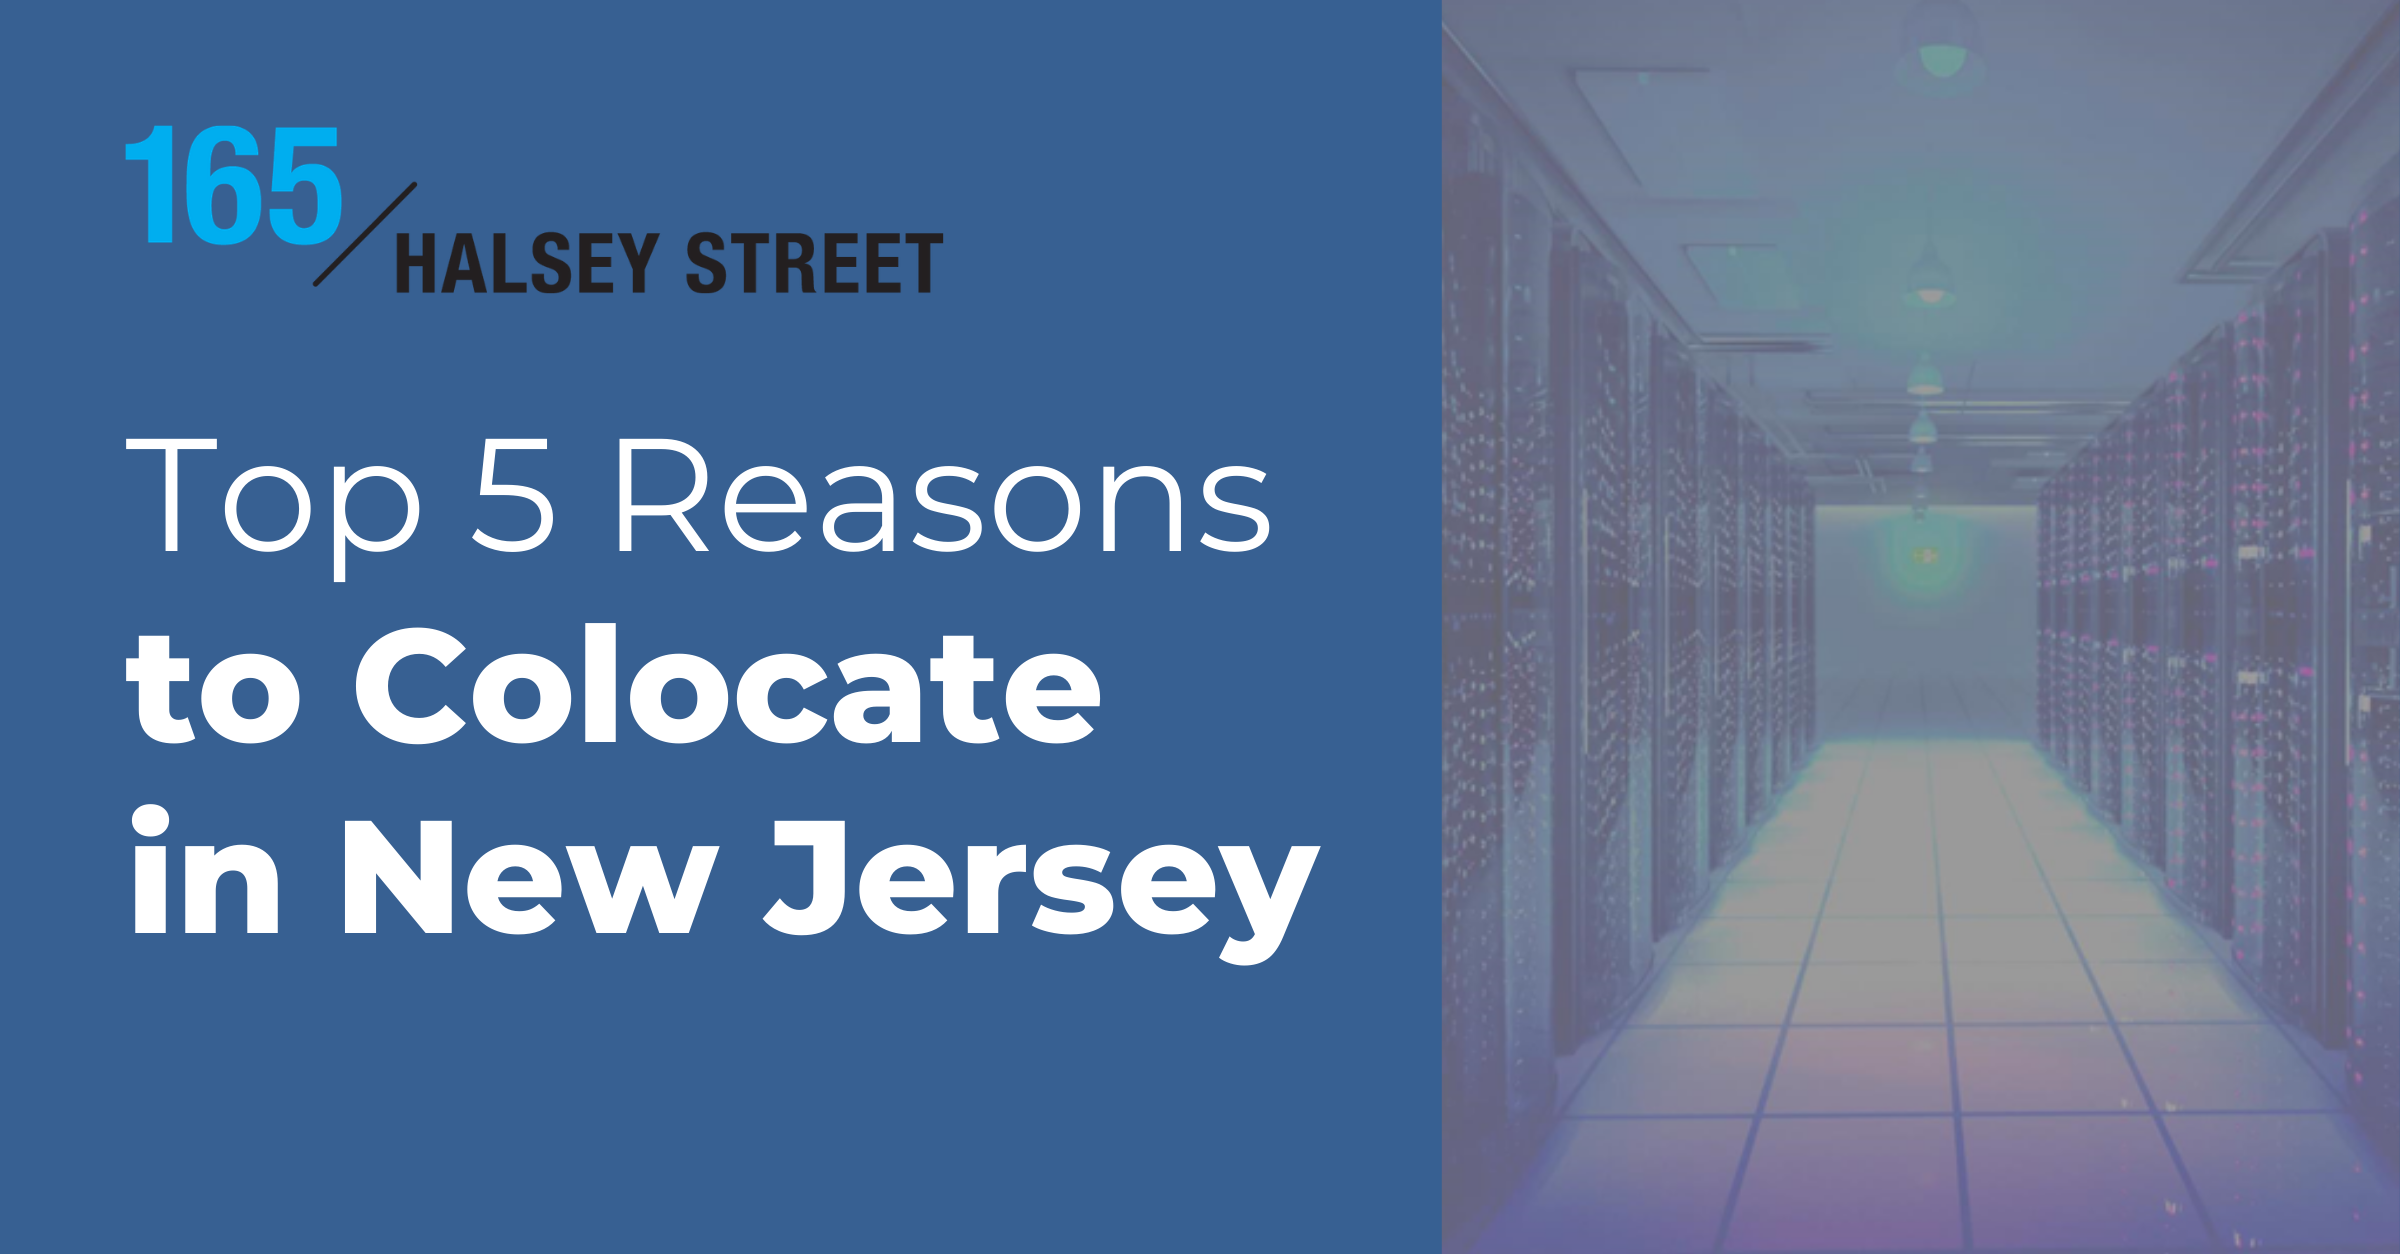 Top 5 Reasons to Colocate in New Jersey